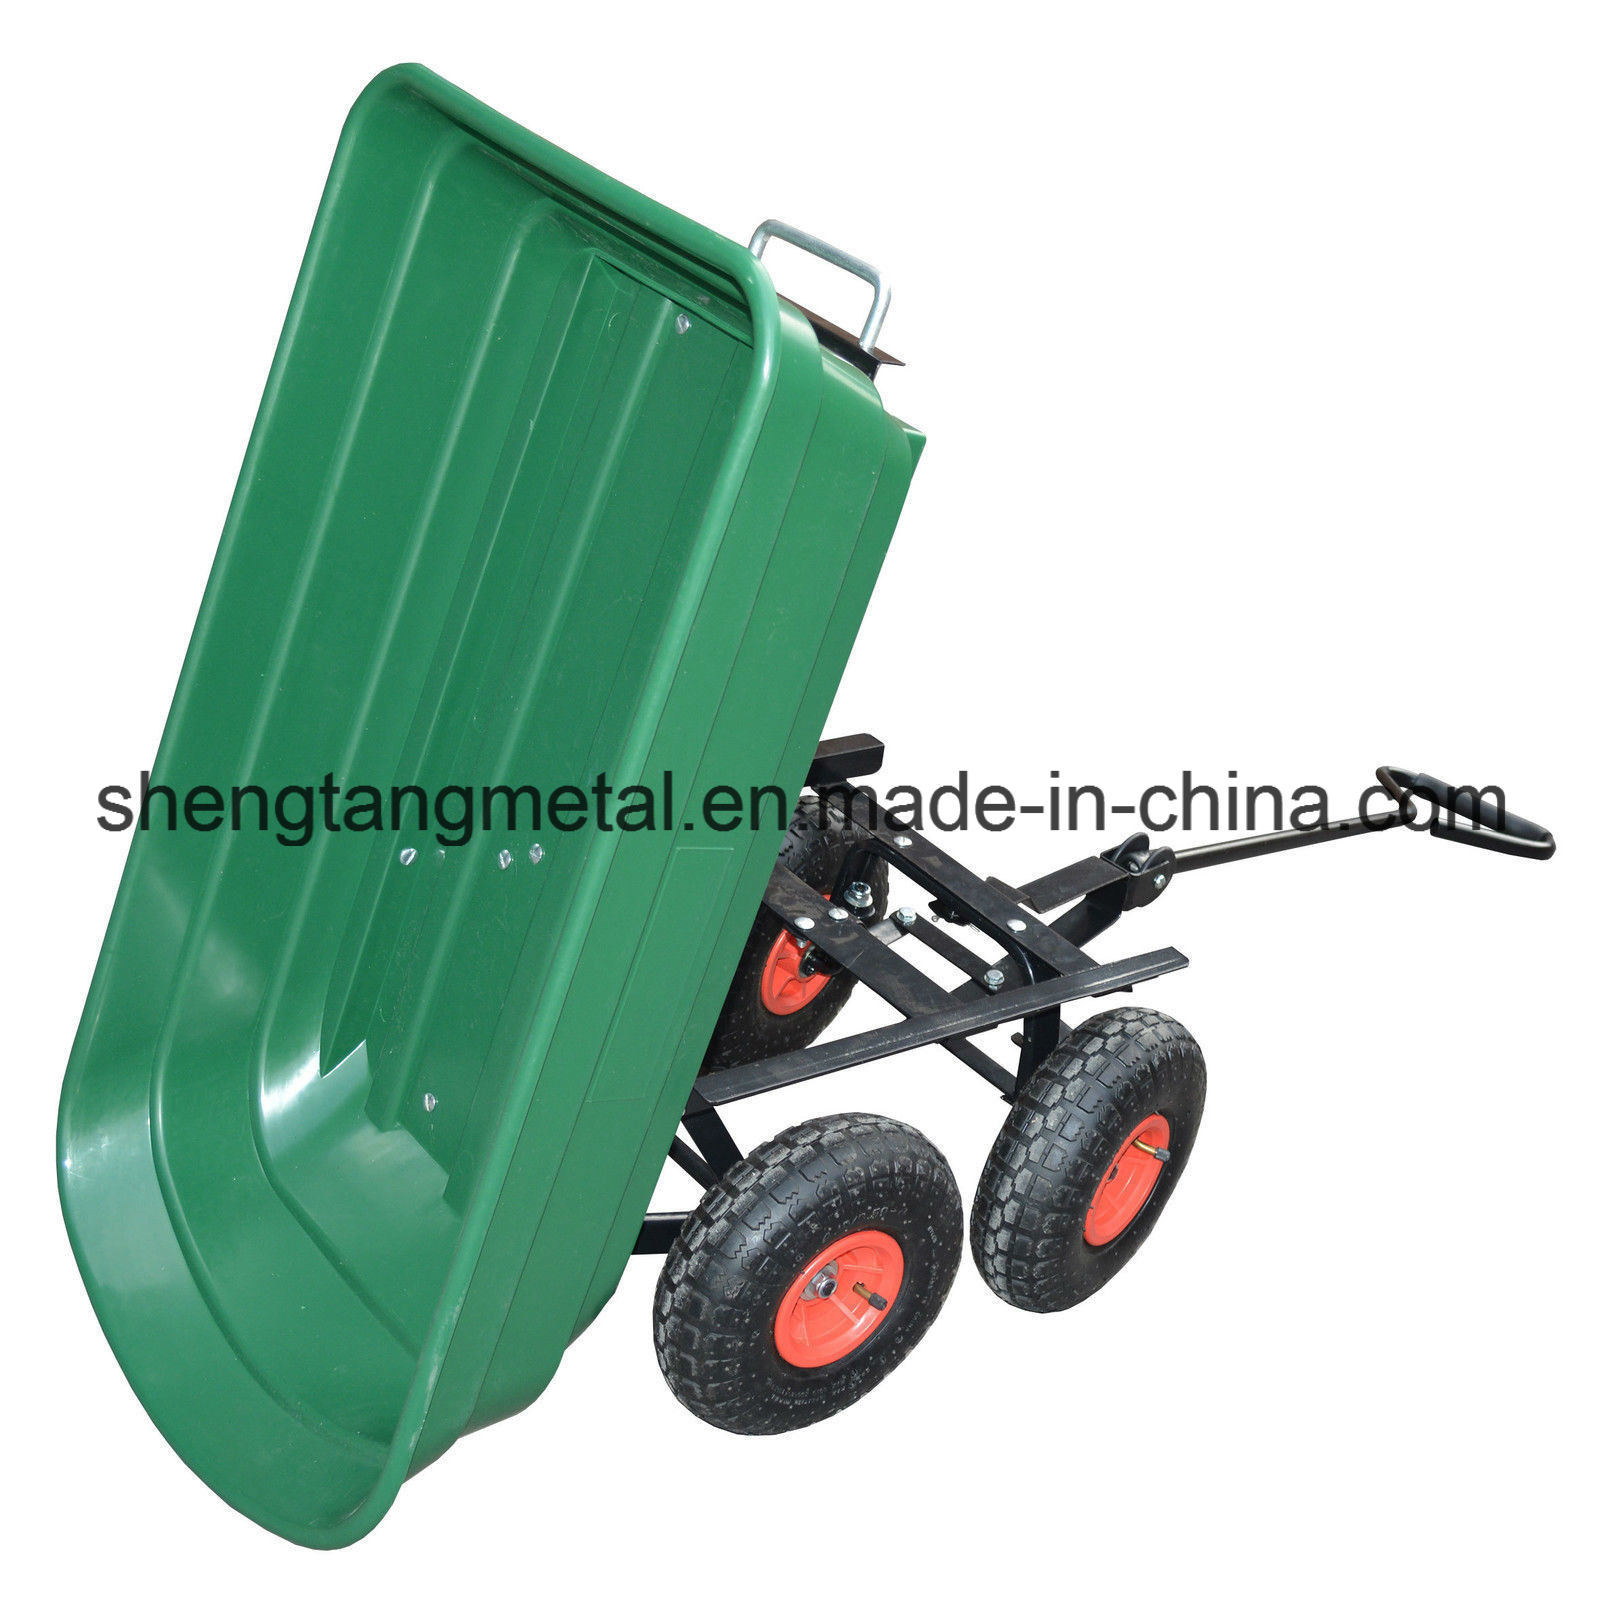 Chine Chariot 4 Roues Chariot De Jardin 75L Sac Chariot ... tout Chariot Remorque De Jardin